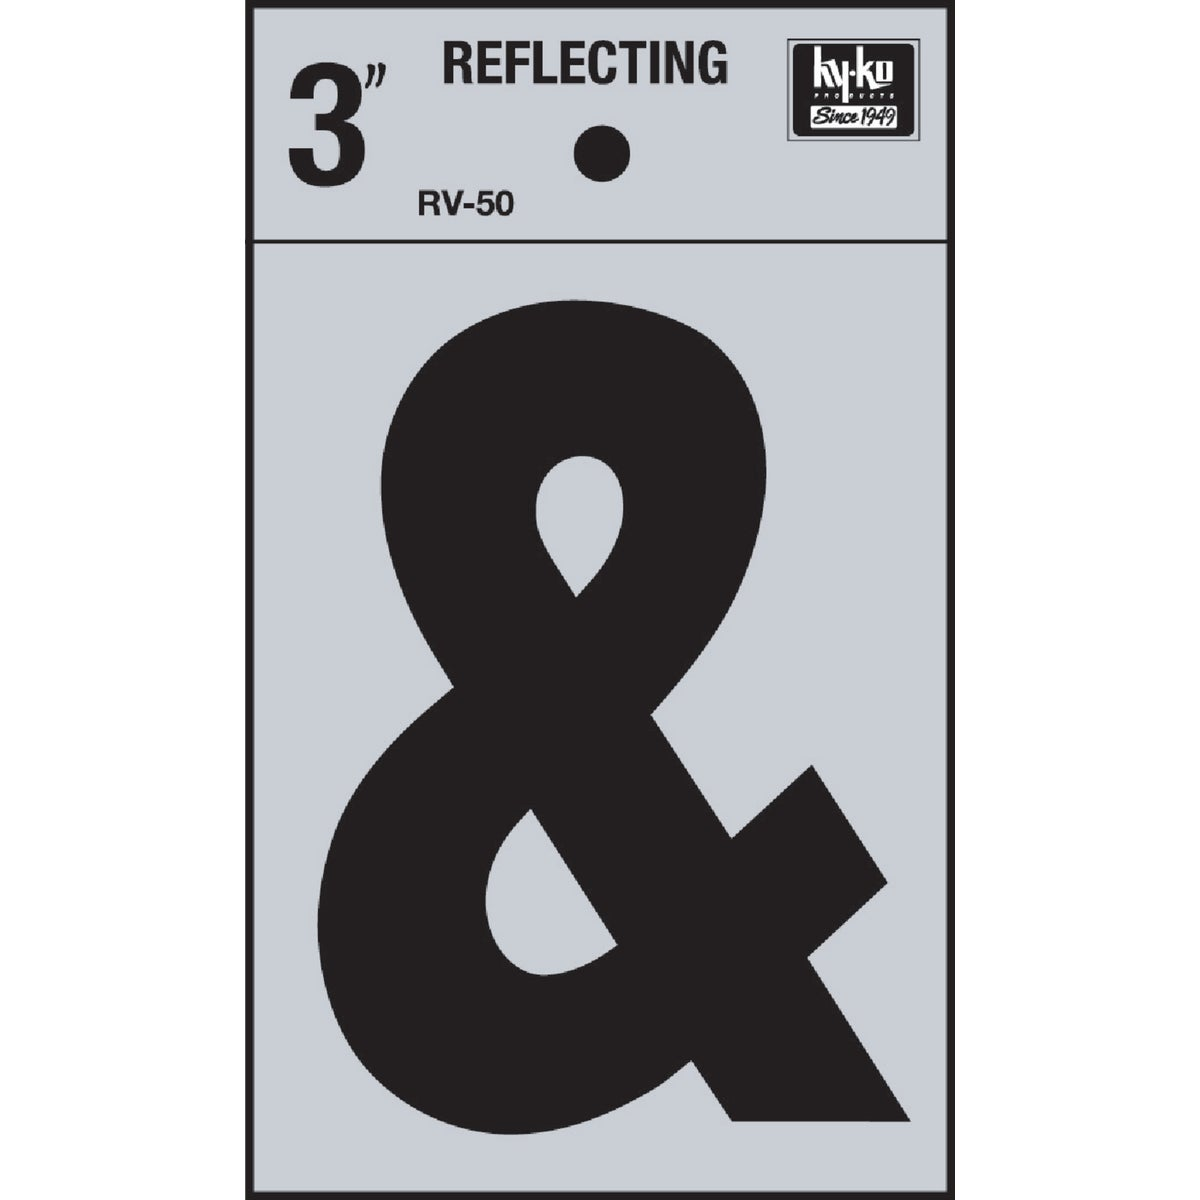 "3"" REFLECT AMPERSAND - RV-50/AM by Hy Ko Prods Co"